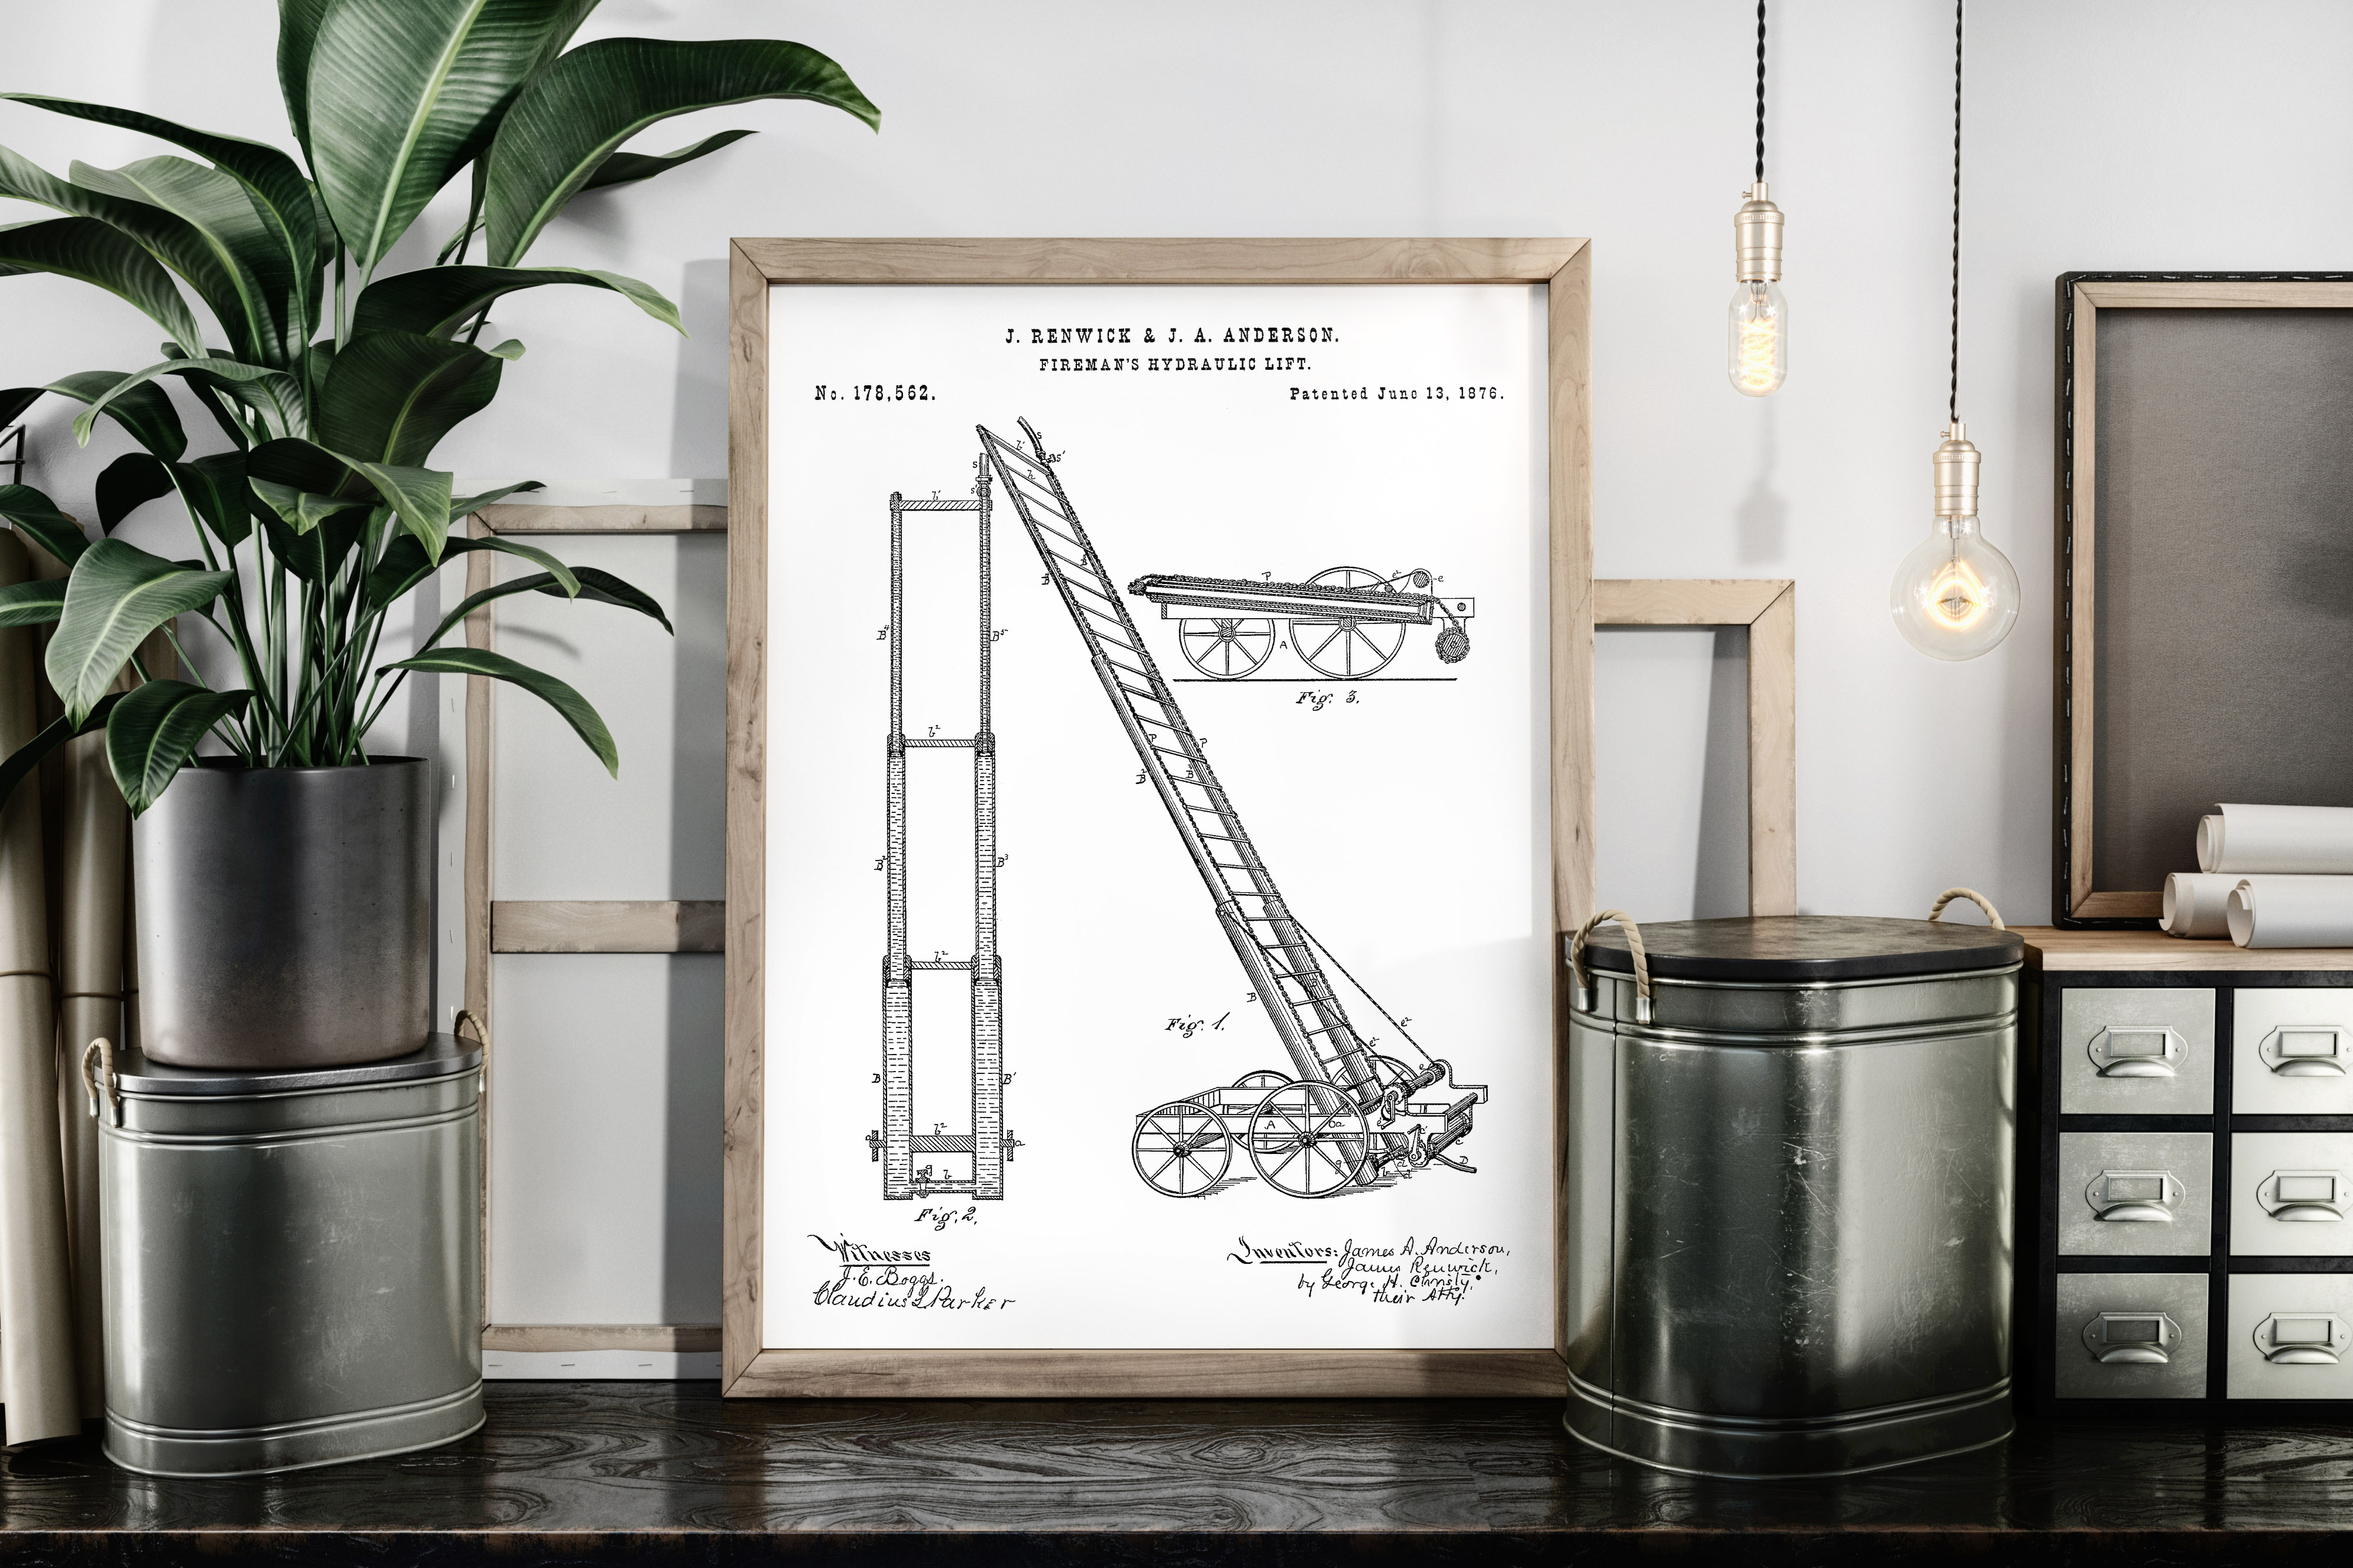 Fireman Hydraulic Lift Patent Art Poster Graphic By Antique